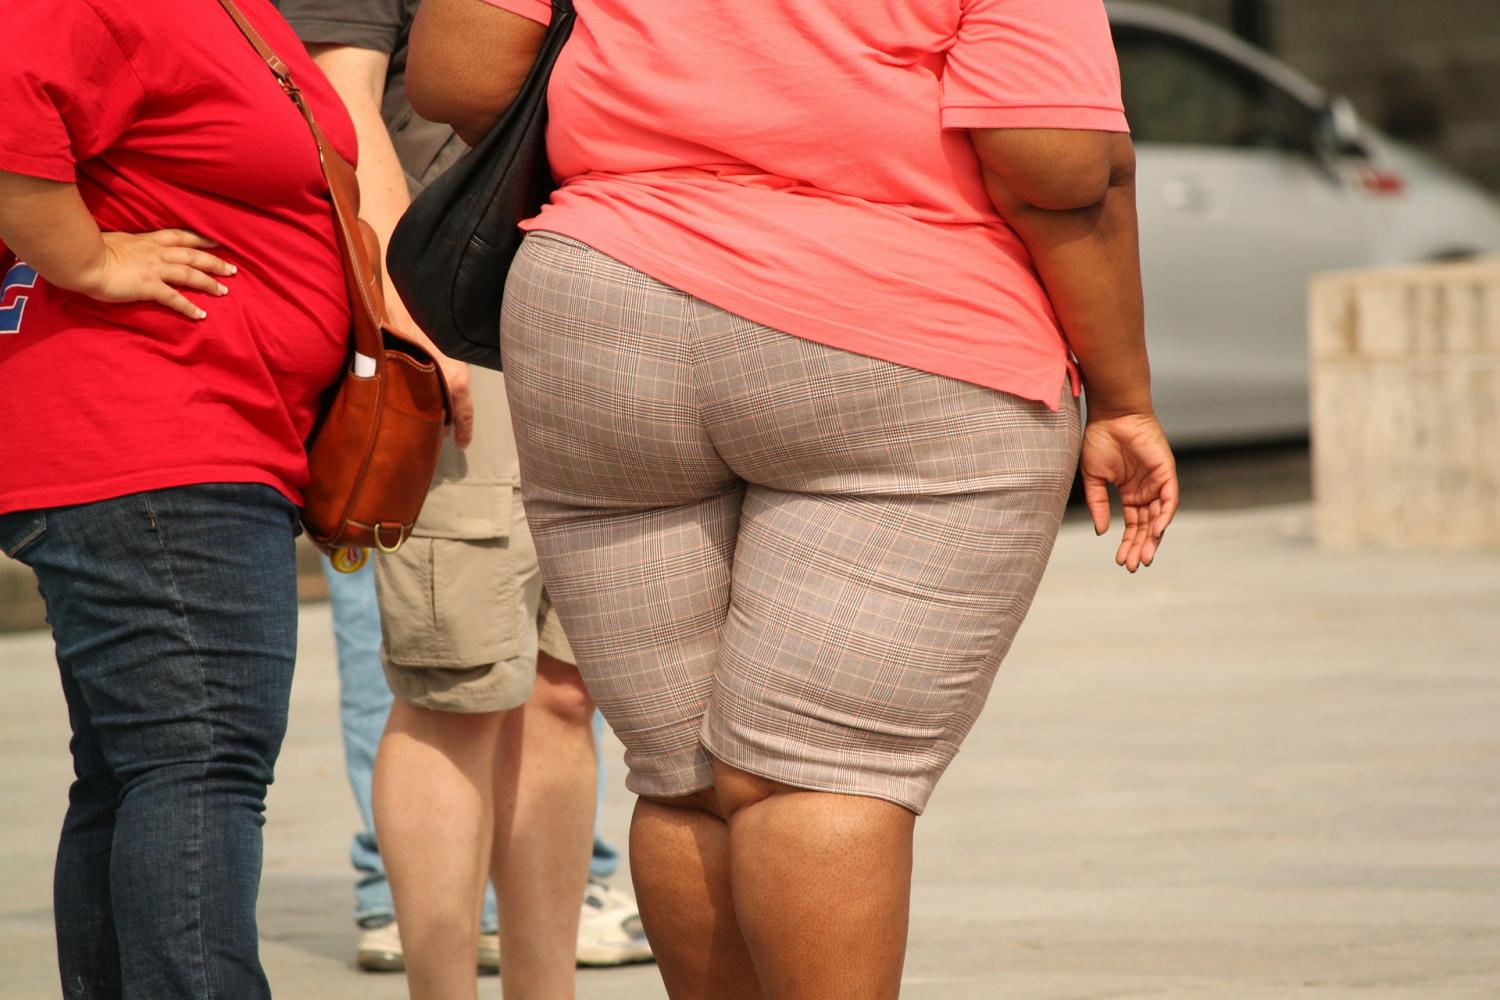 Why Do Some Obese People Have Healthier Fat Tissue Than Others